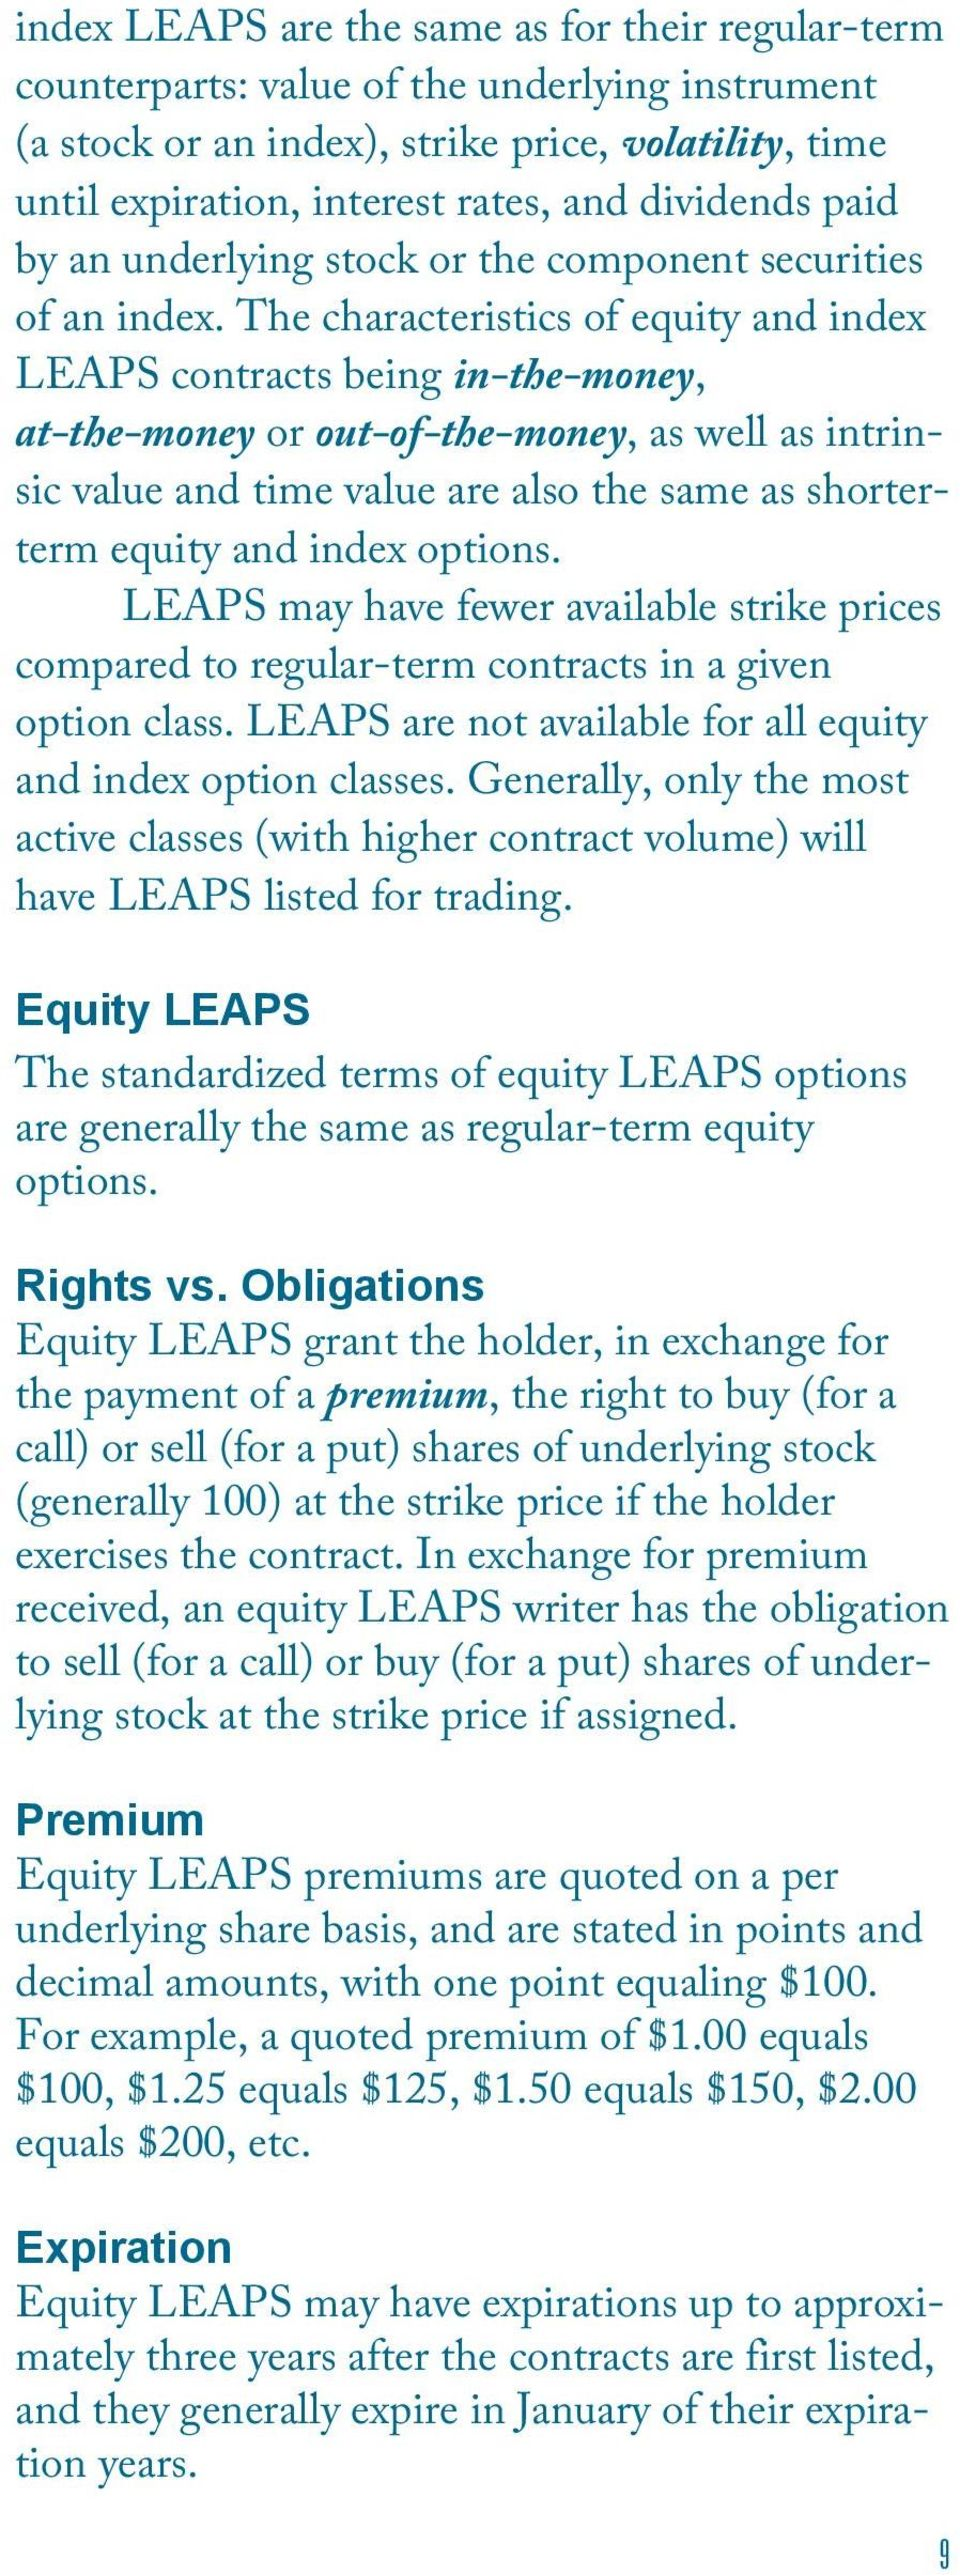 The characteristics of equity and index LEAPS contracts being in-the-money, at-the-money or out-of-the-money, as well as intrinsic value and time value are also the same as shorterterm equity and